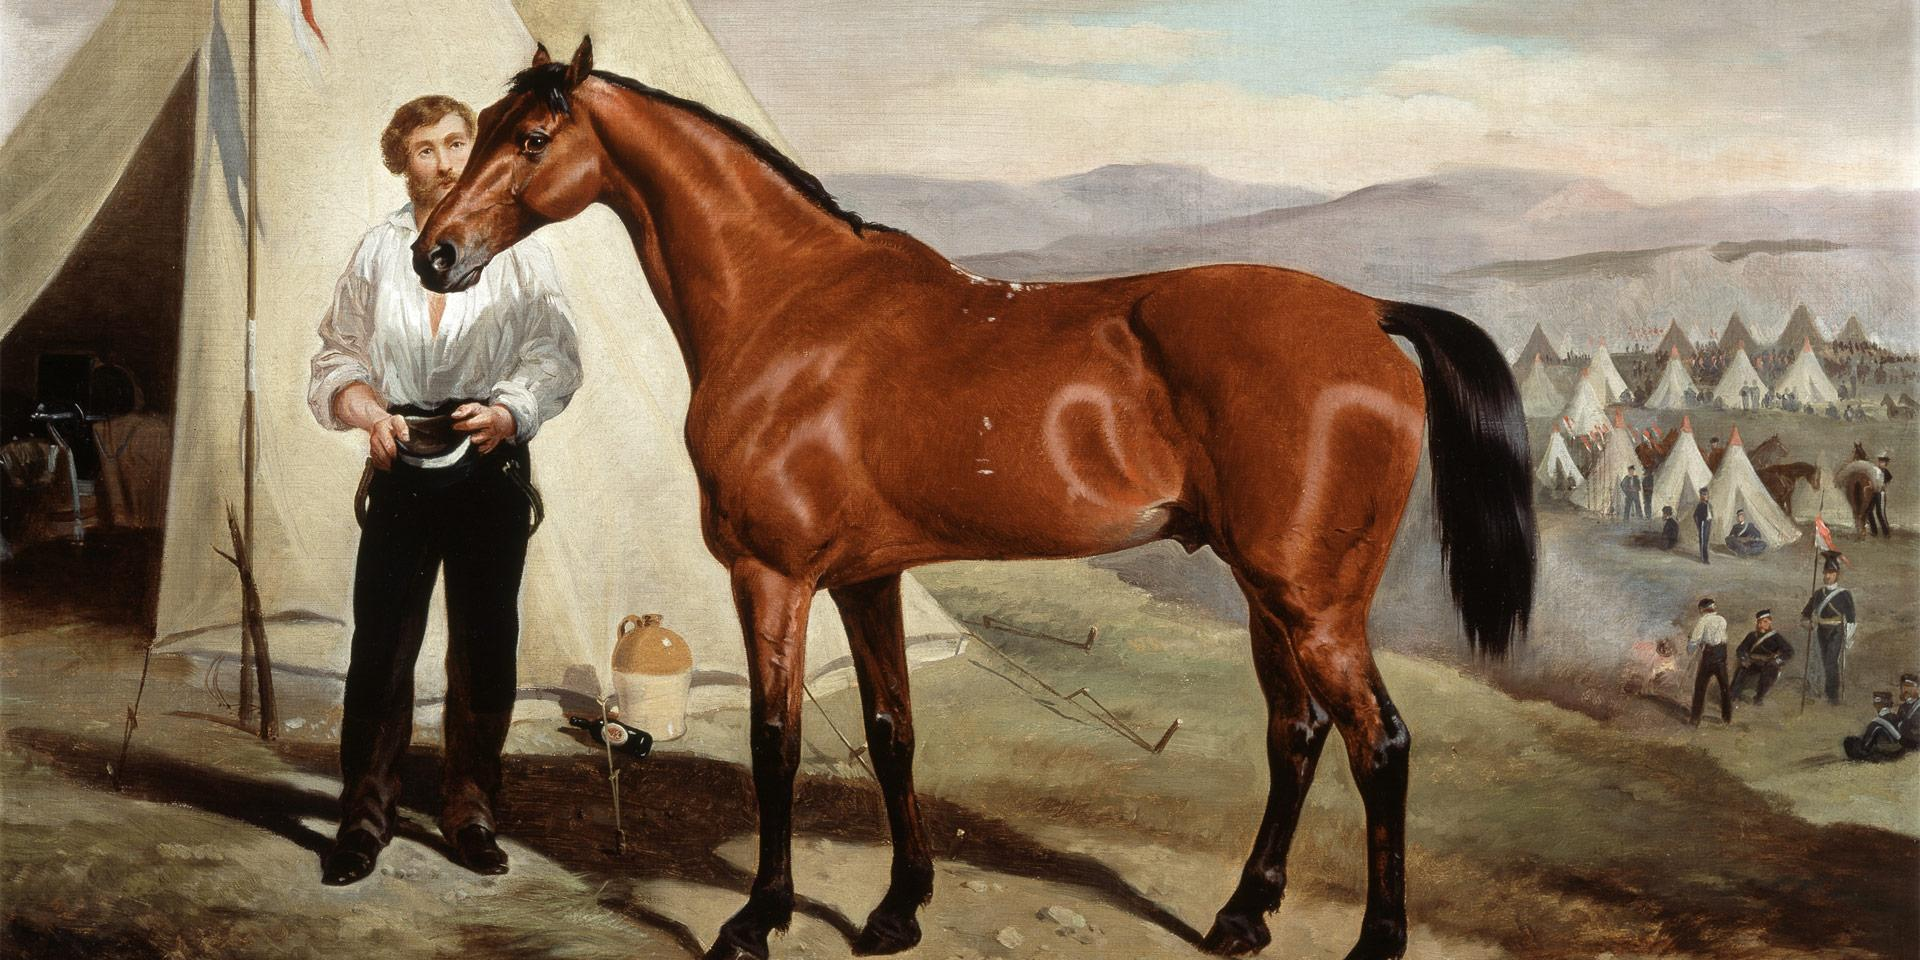 Sir Briggs, the horse of Lord Tredegar in the camp in the Crimea, 1854